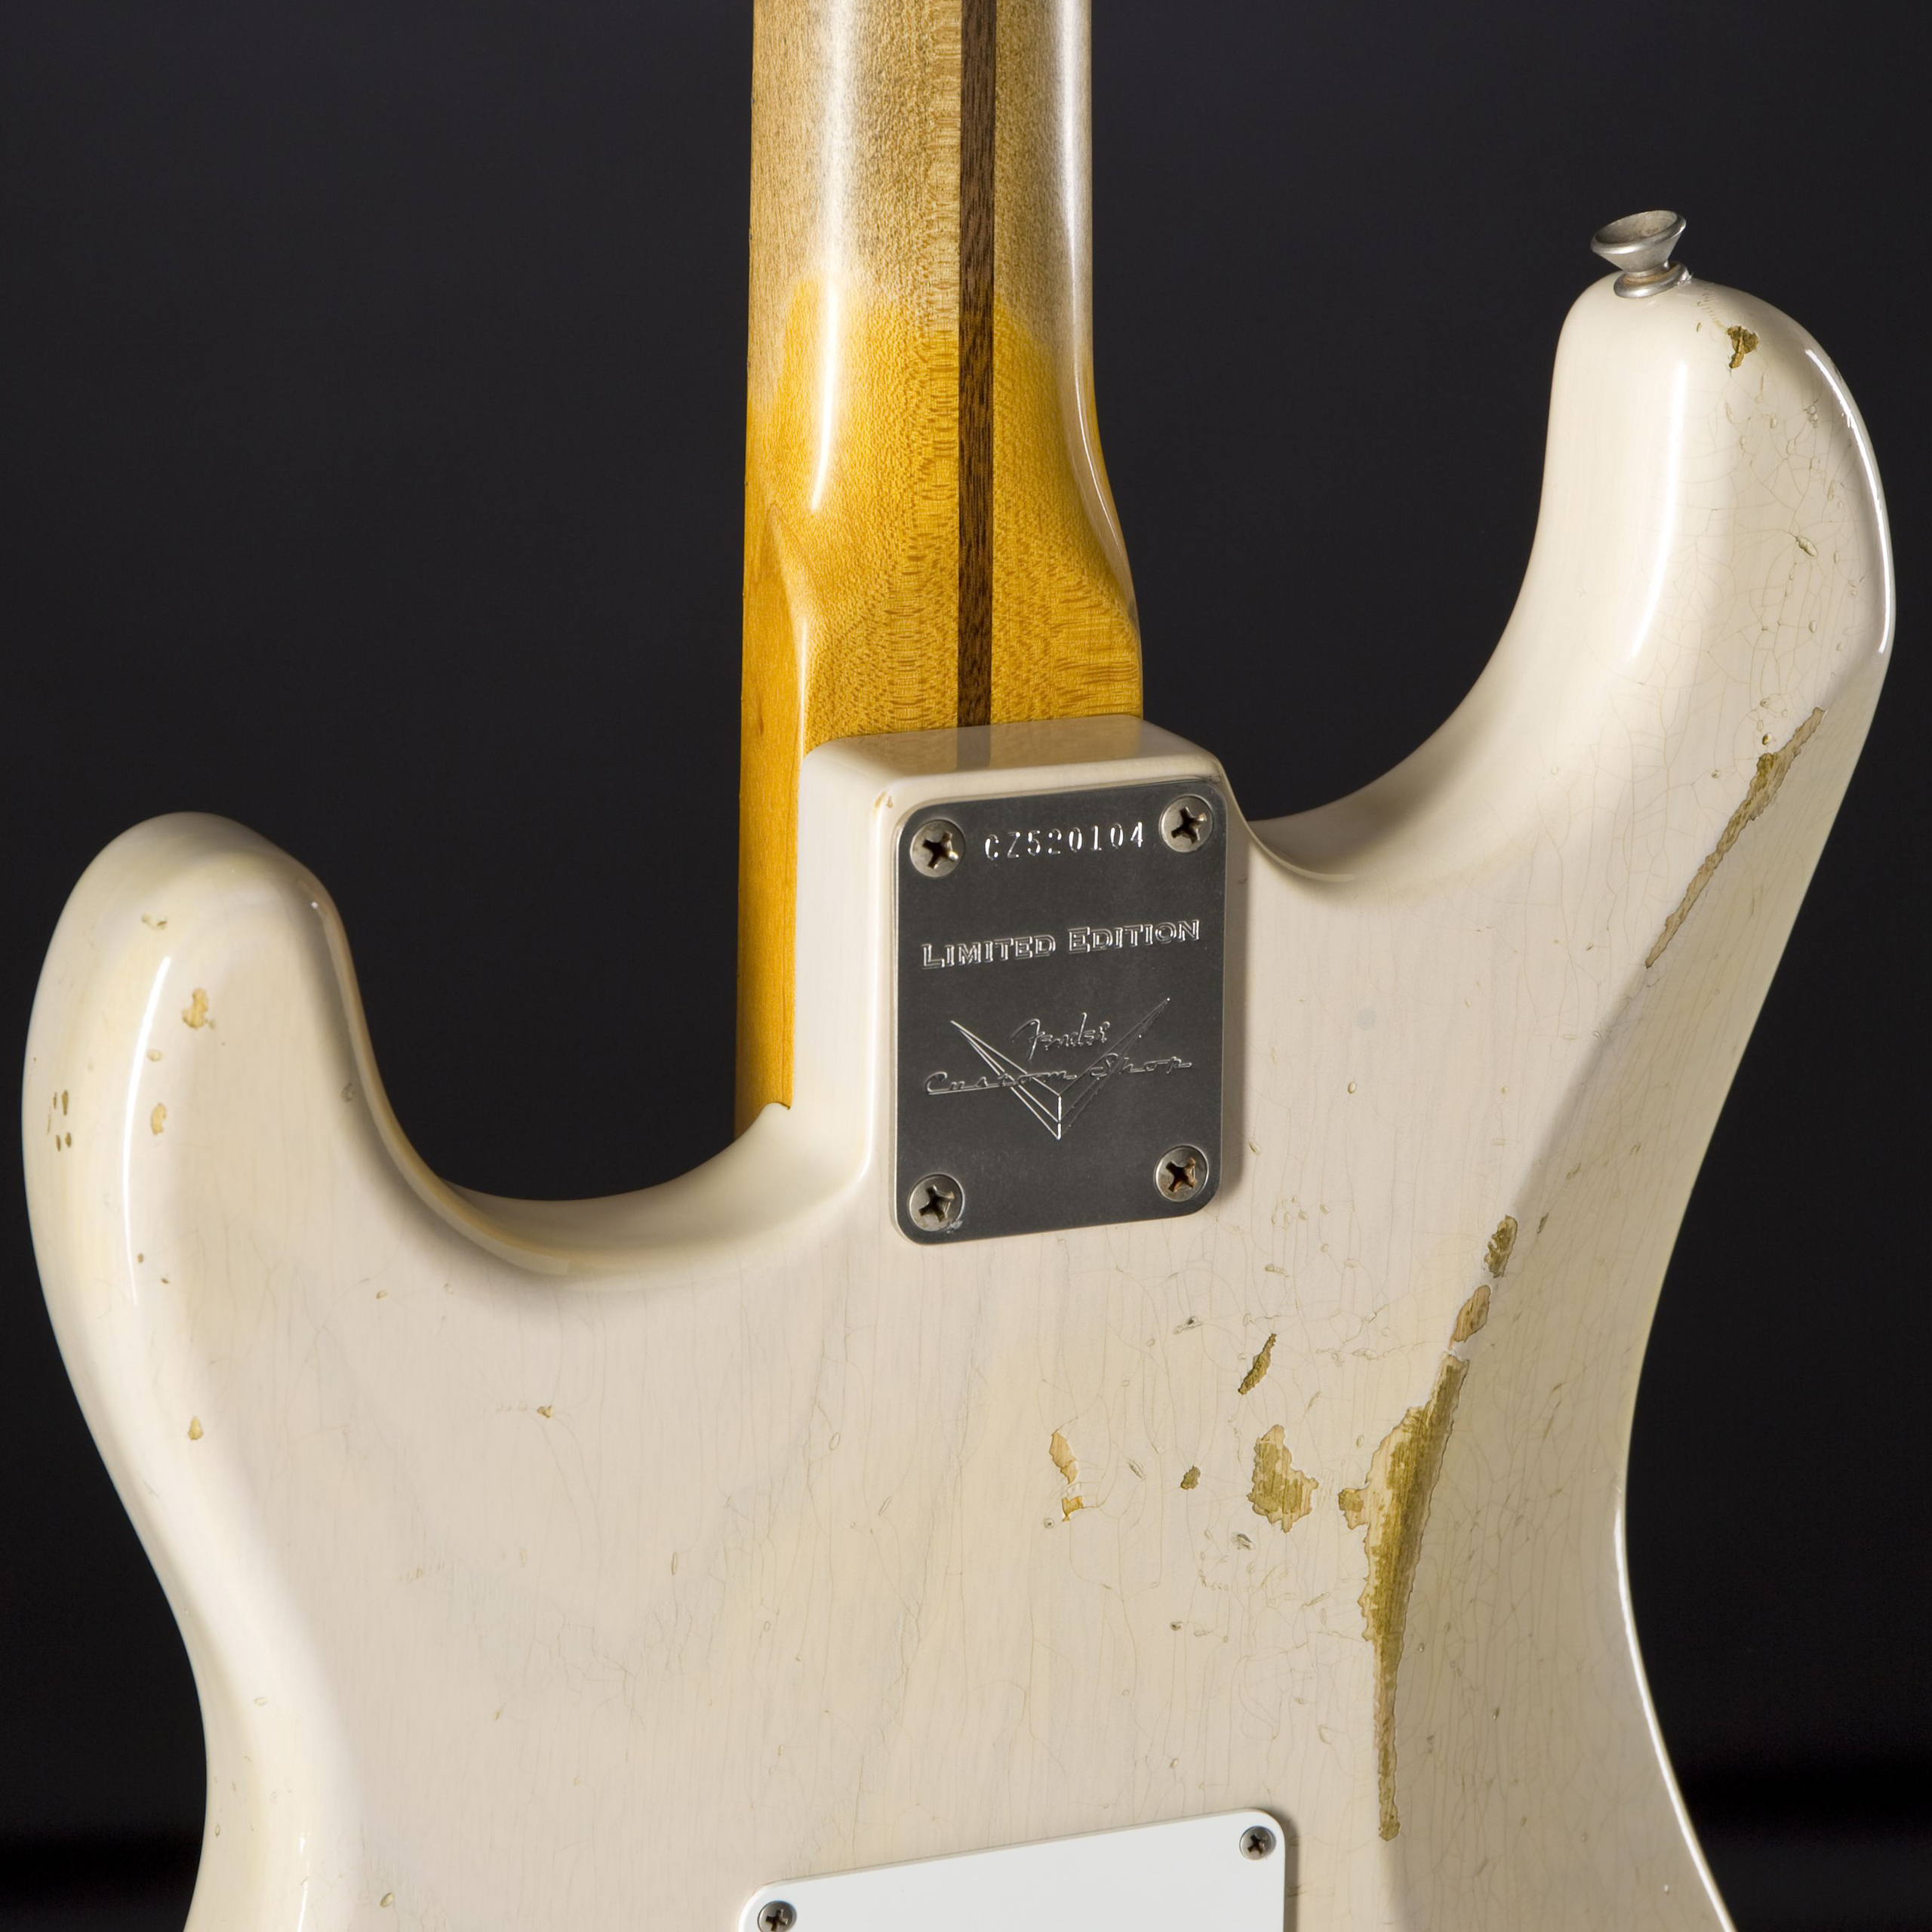 FENDER Limited Edition 1955 Relic Stratocaster Dirty White Blonde #CZ520104 Rückseite